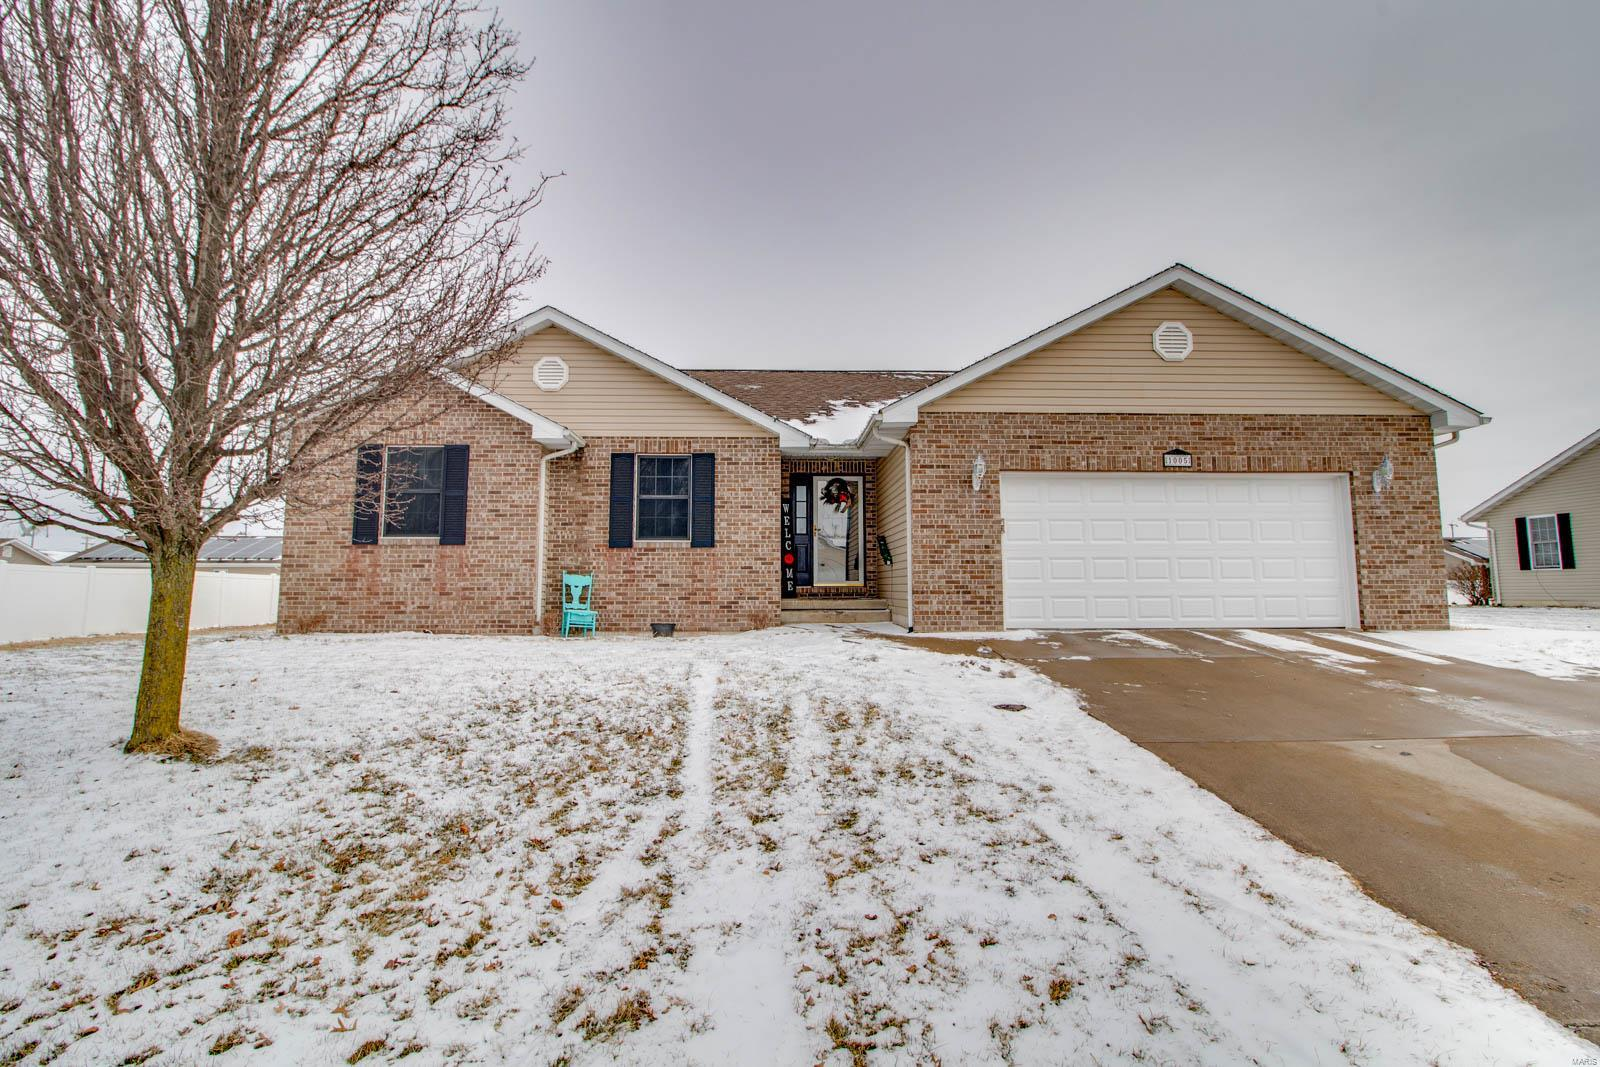 1005 Lillian Property Photo - Jerseyville, IL real estate listing